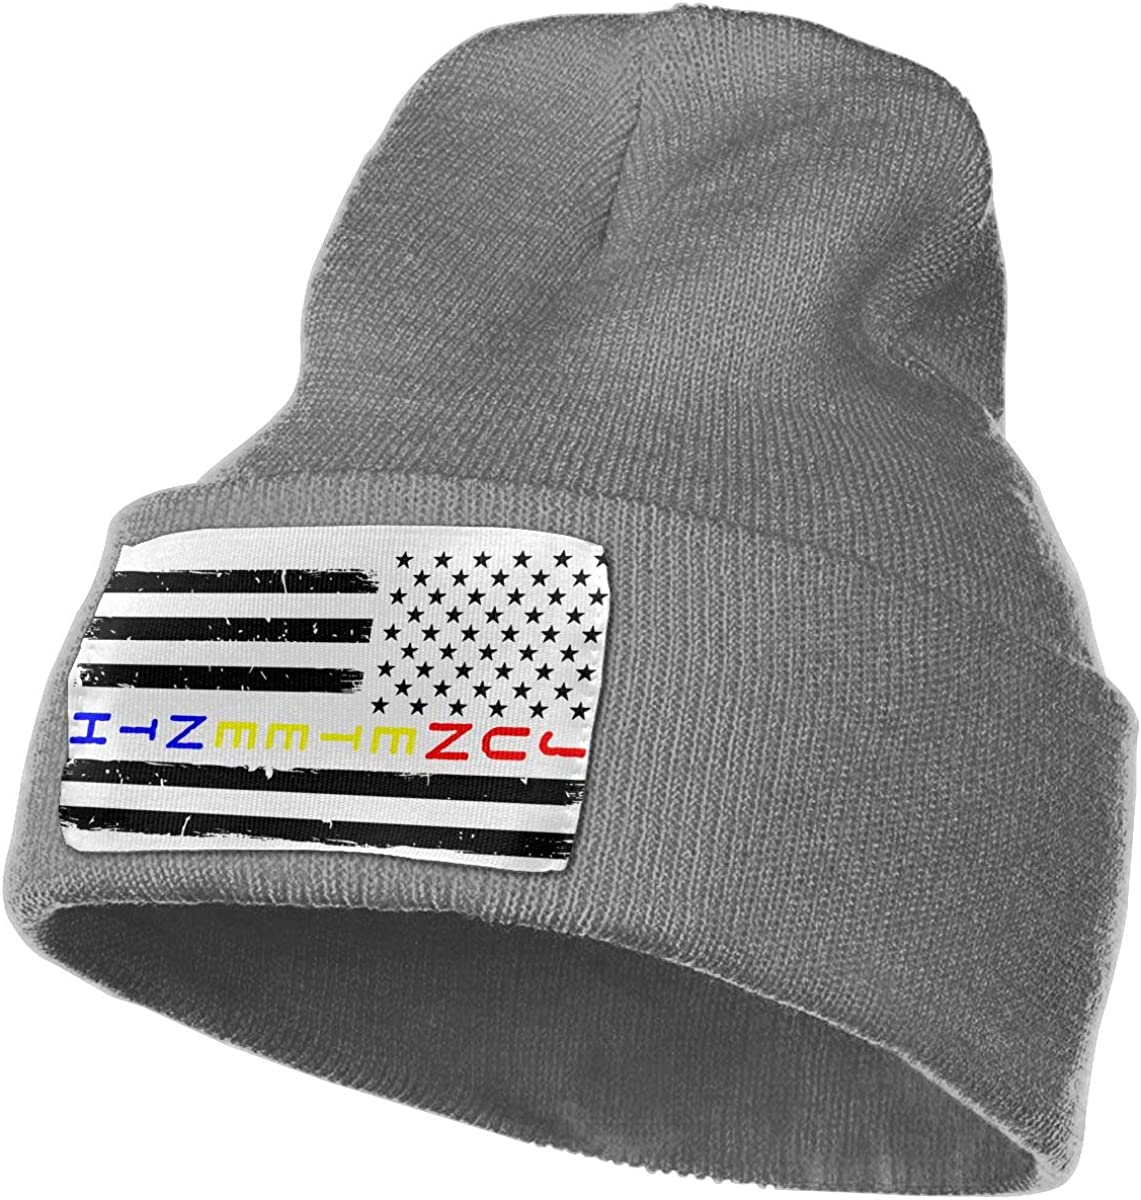 TAOMAP89 Juneteenth Flag Women and Men Skull Caps Winter Warm Stretchy Knitting Beanie Hats